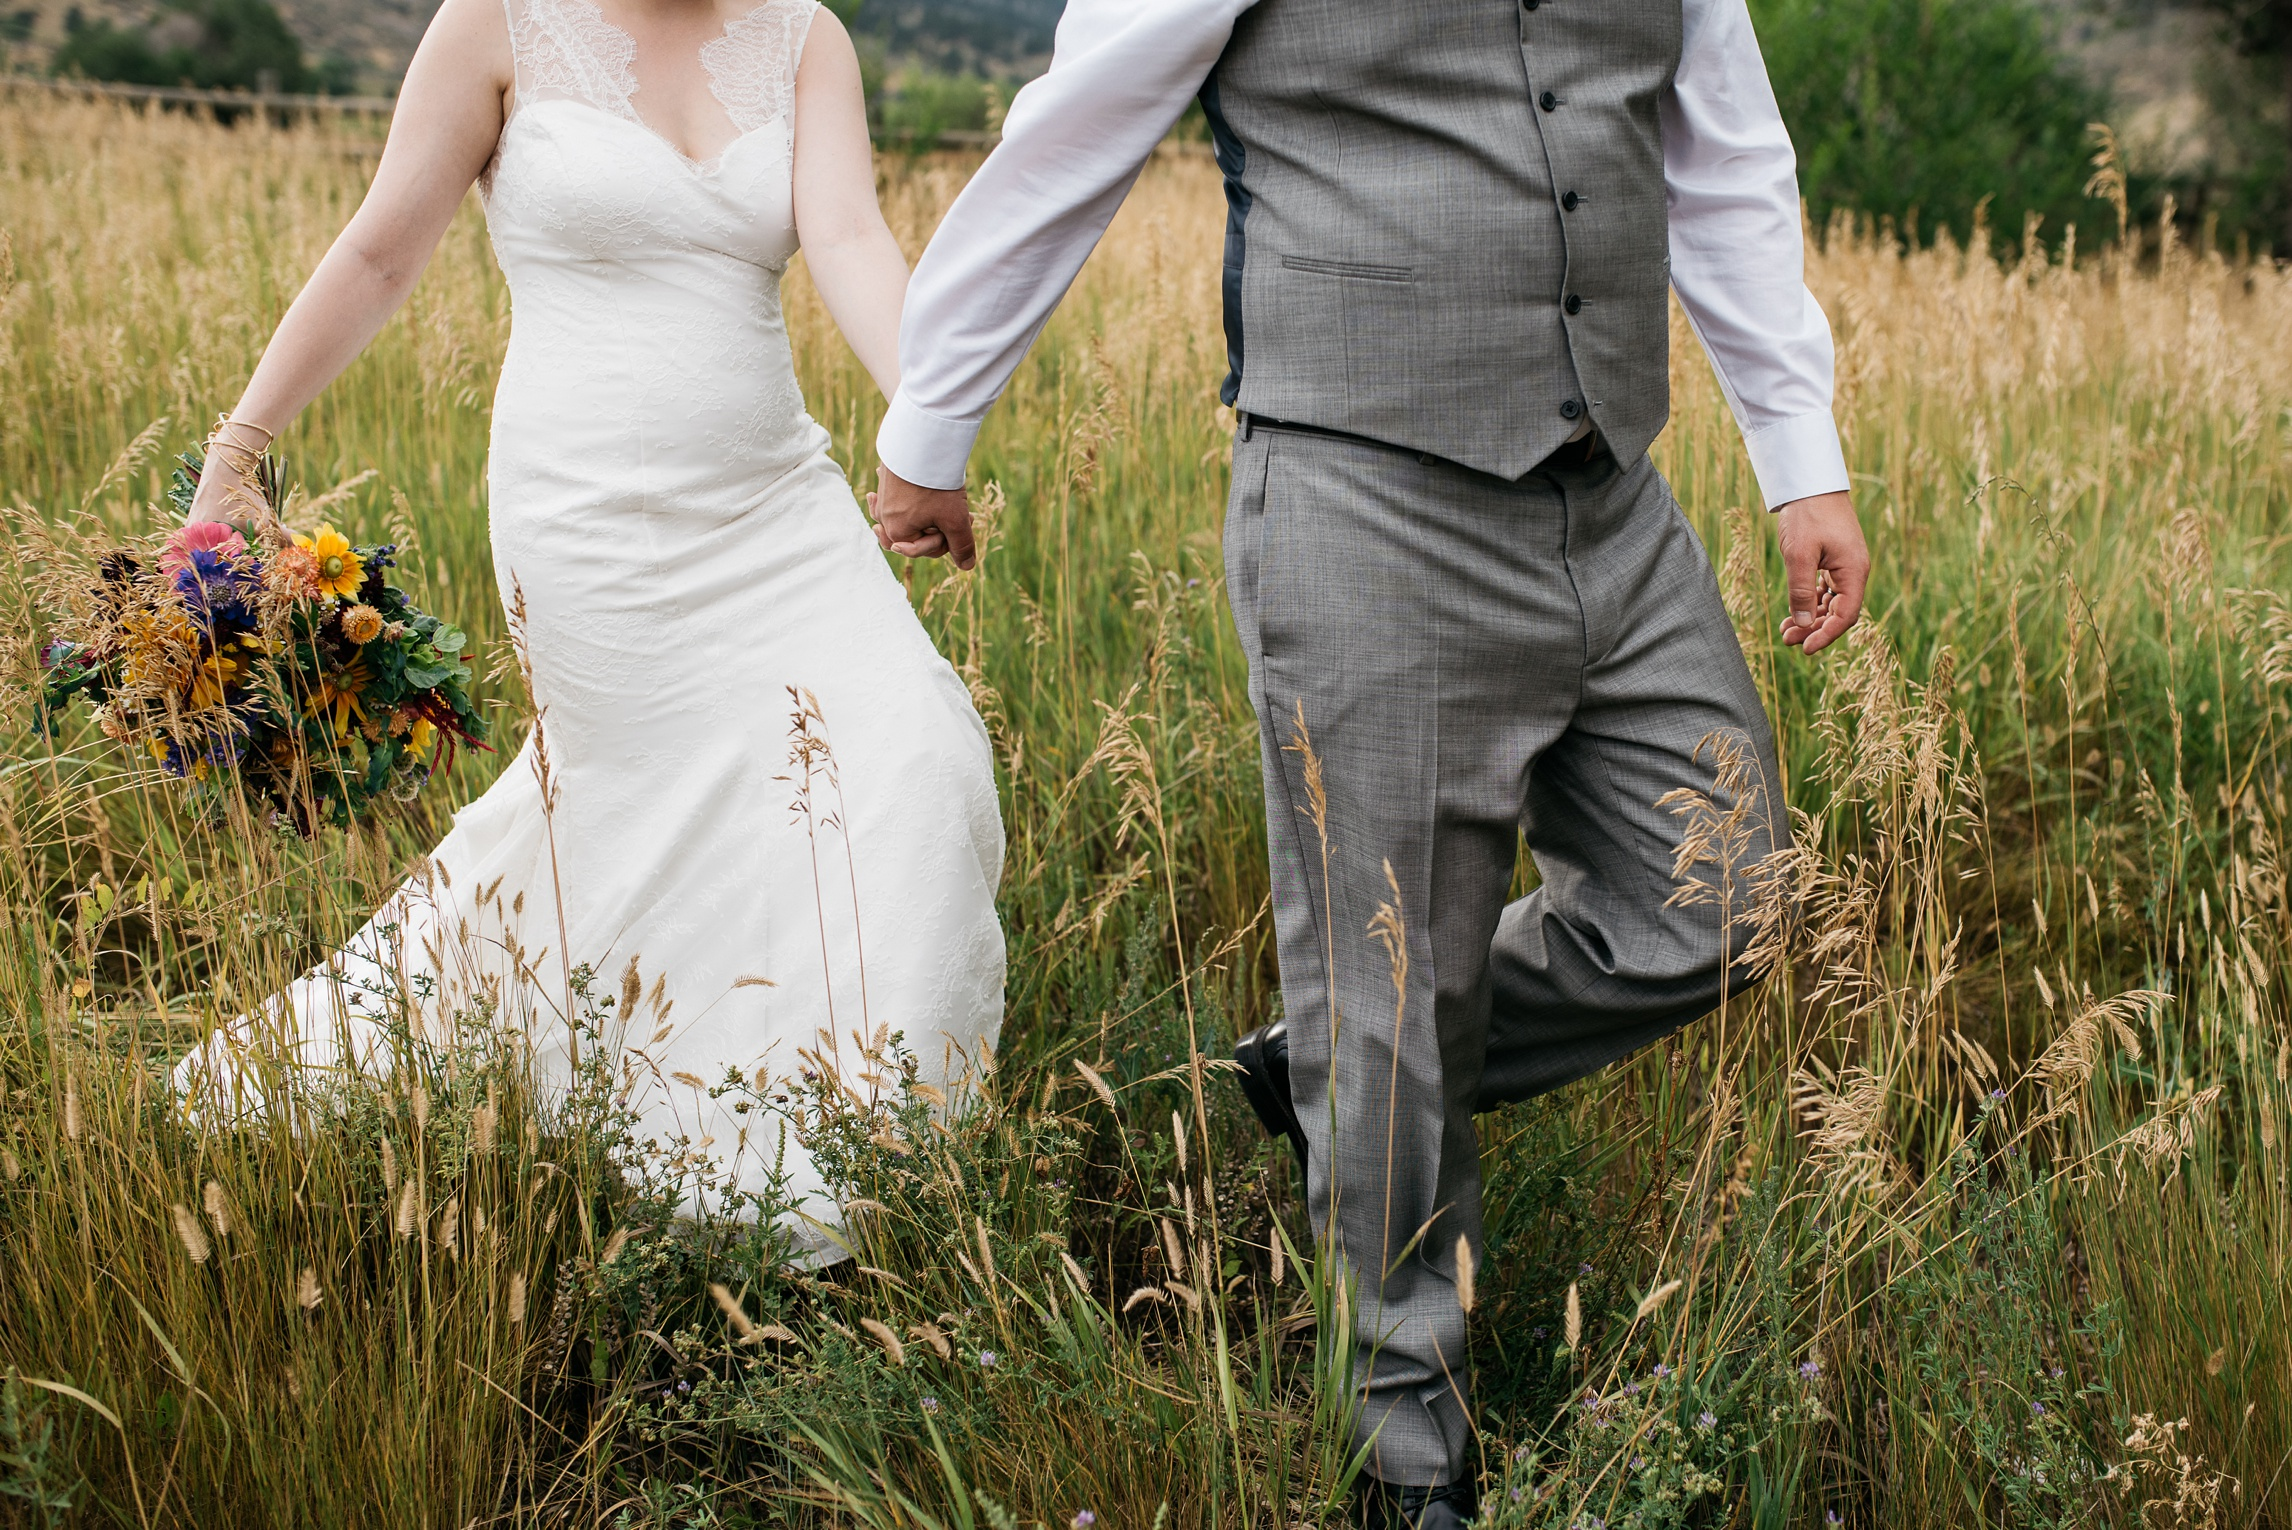 A bride and groom walk though the pastures at Sylvan Dale Guest Ranch on their wedding day. Wedding photography by Sonja Salzburg of Sonja K Photography.